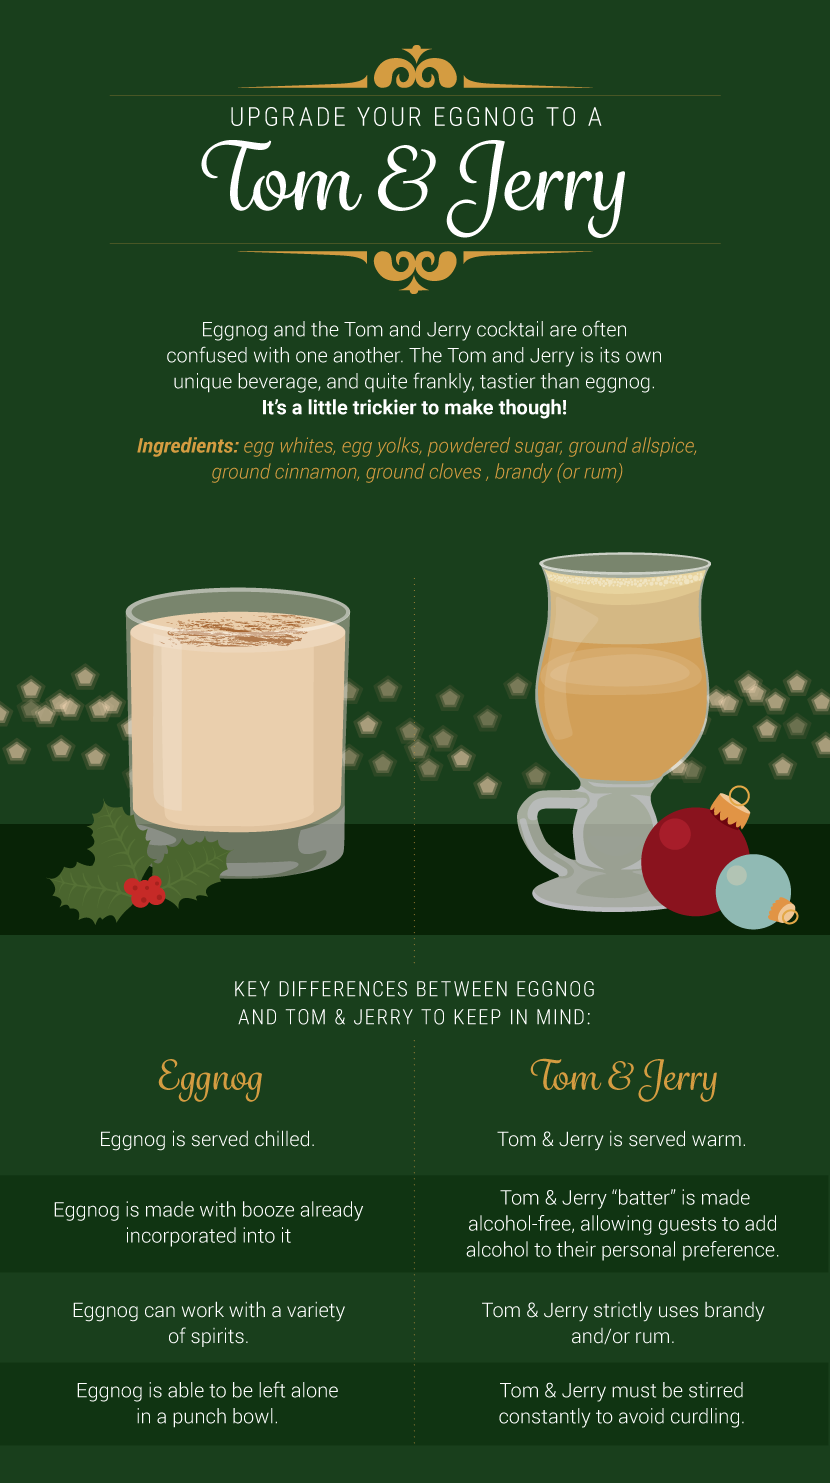 Tom and Jerry - Festive Cocktails for the Holidays